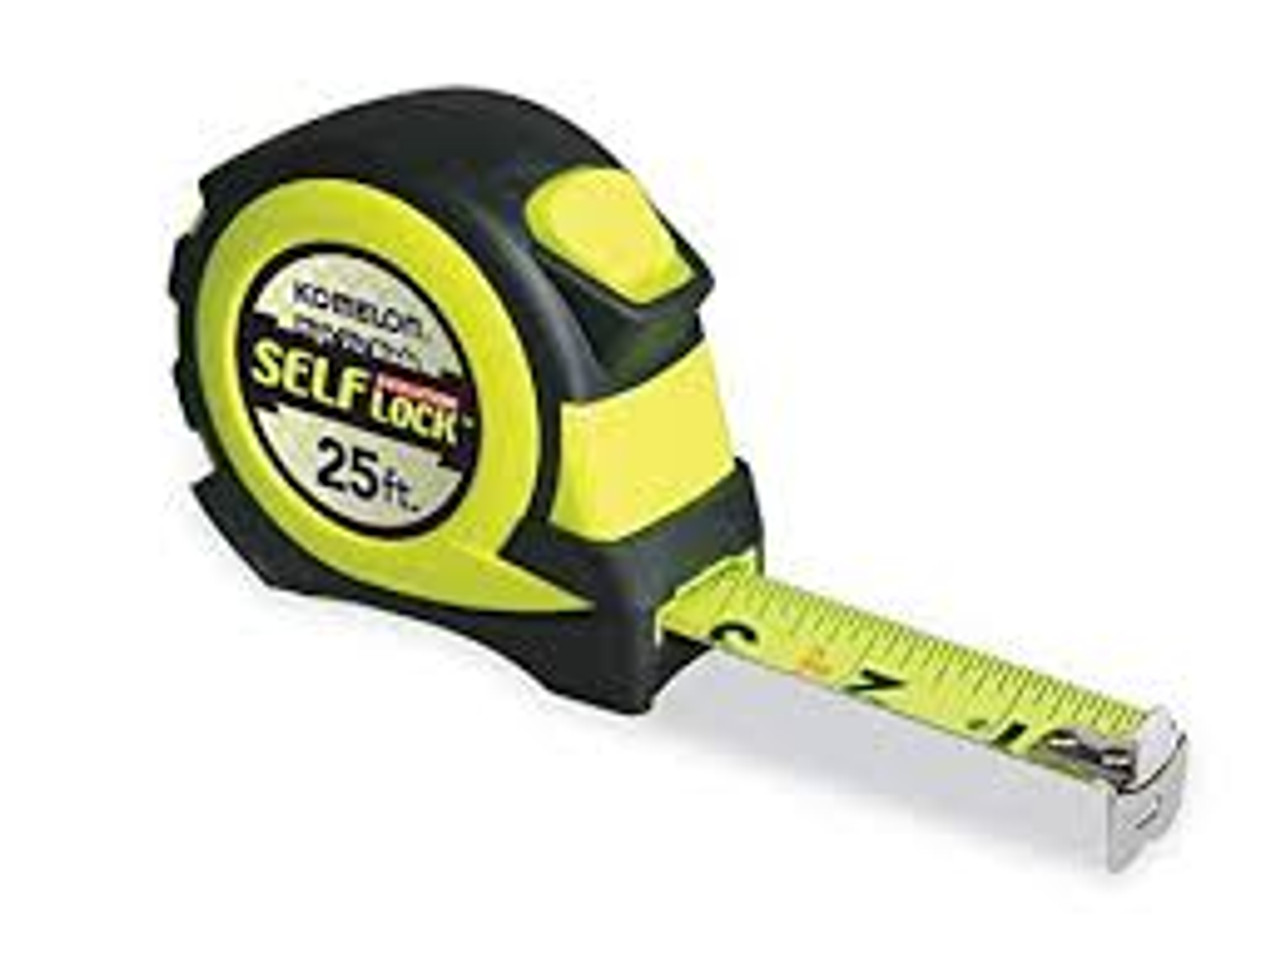 25' SELF LOCKING TAPE MEASURE - HIGH VISIBILITY